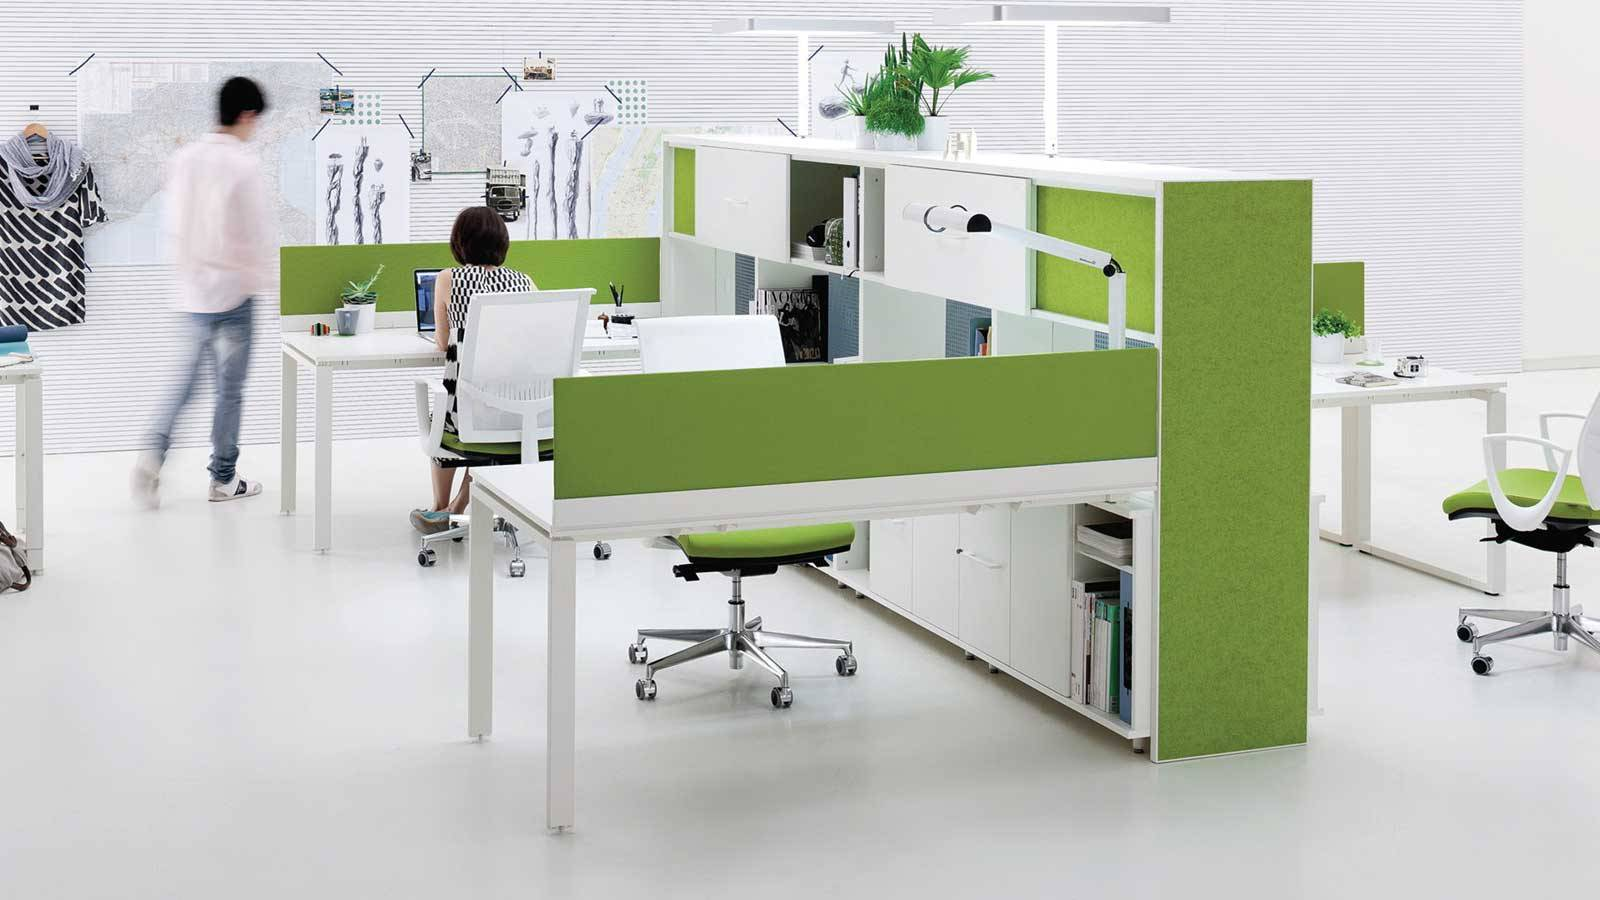 office contemporary furniture by Paolo Cortivo D&T Hub for Archiutti